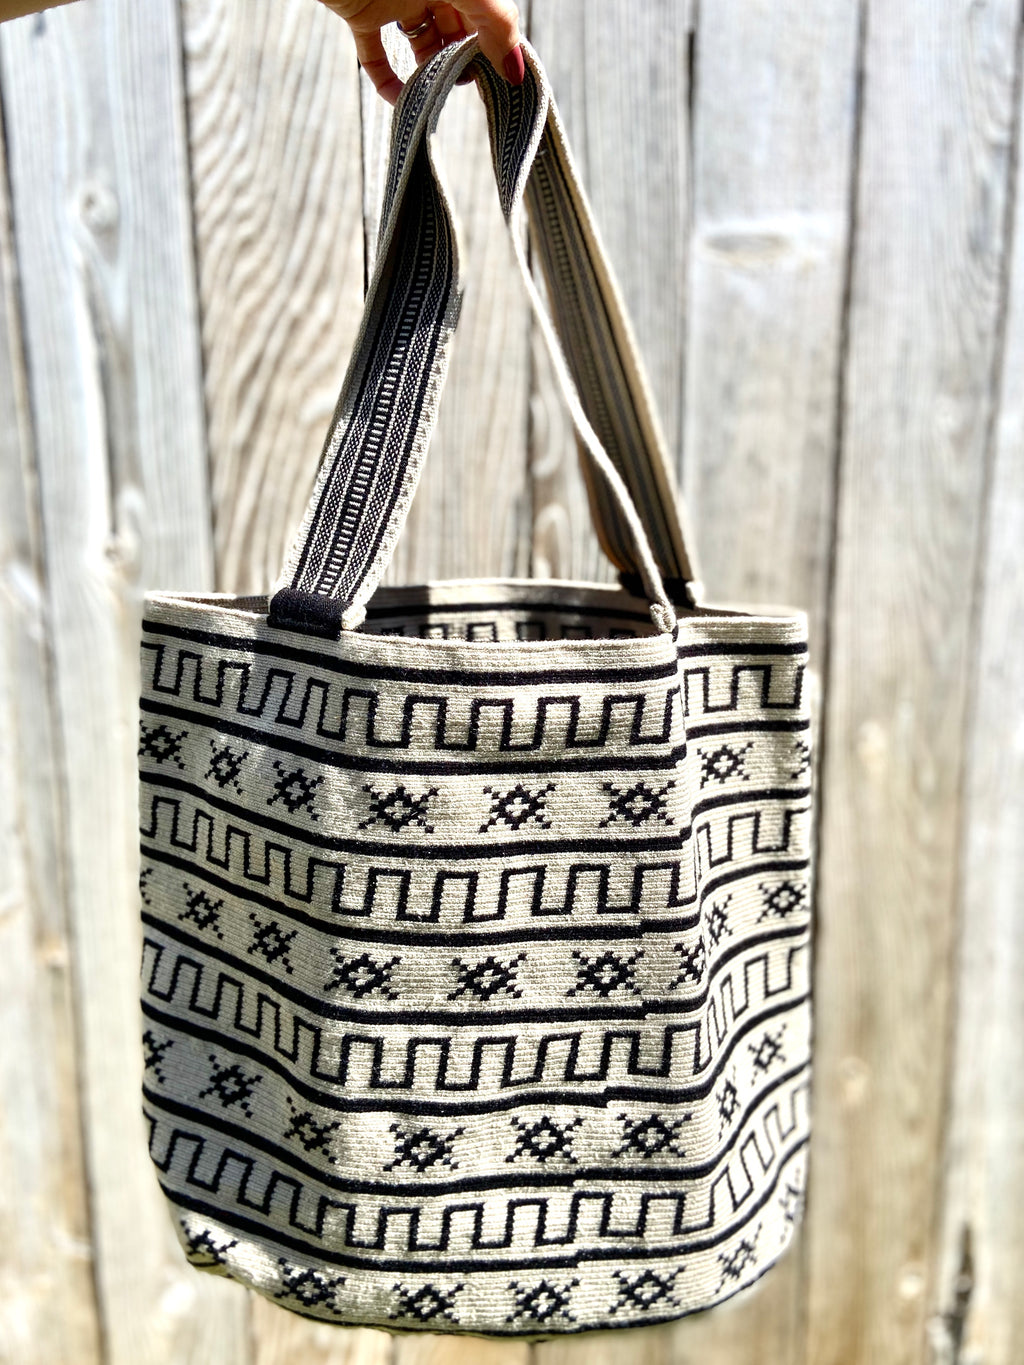 Perissa Beach Premium Tote - Single Thread Crochet